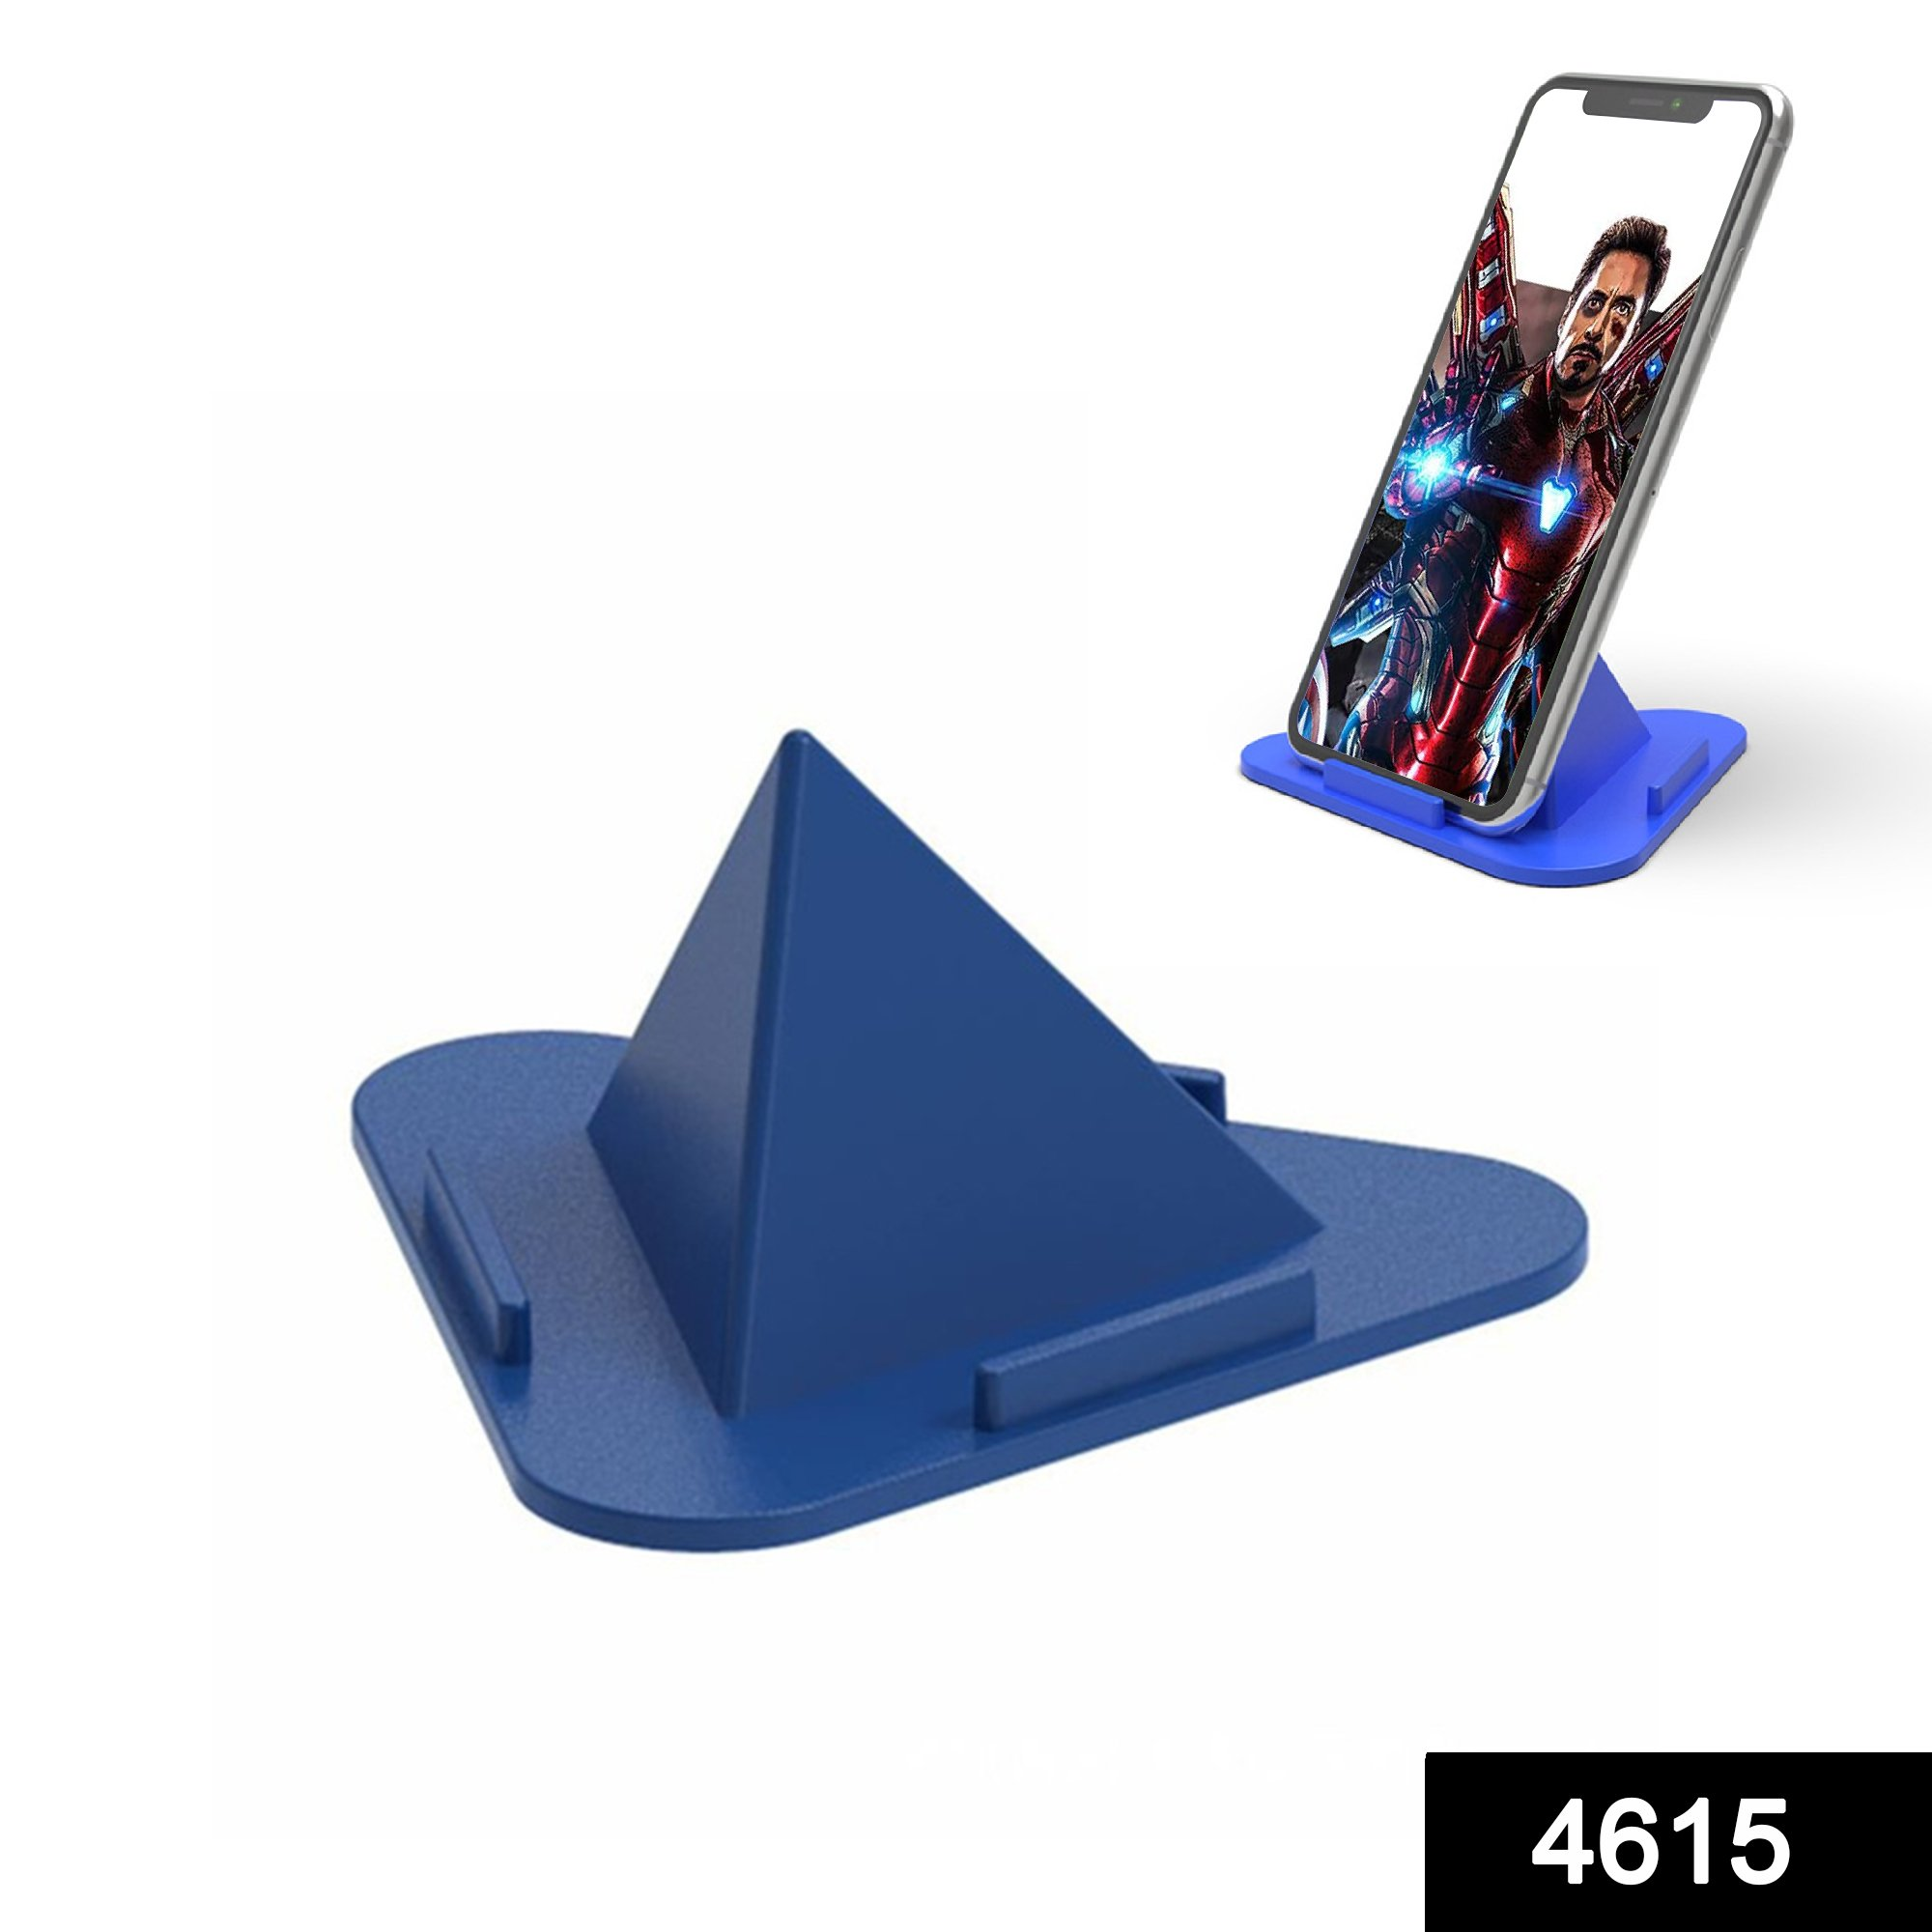 4615 Pyramid Mobile Stand with 3 Different Inclined Angles -